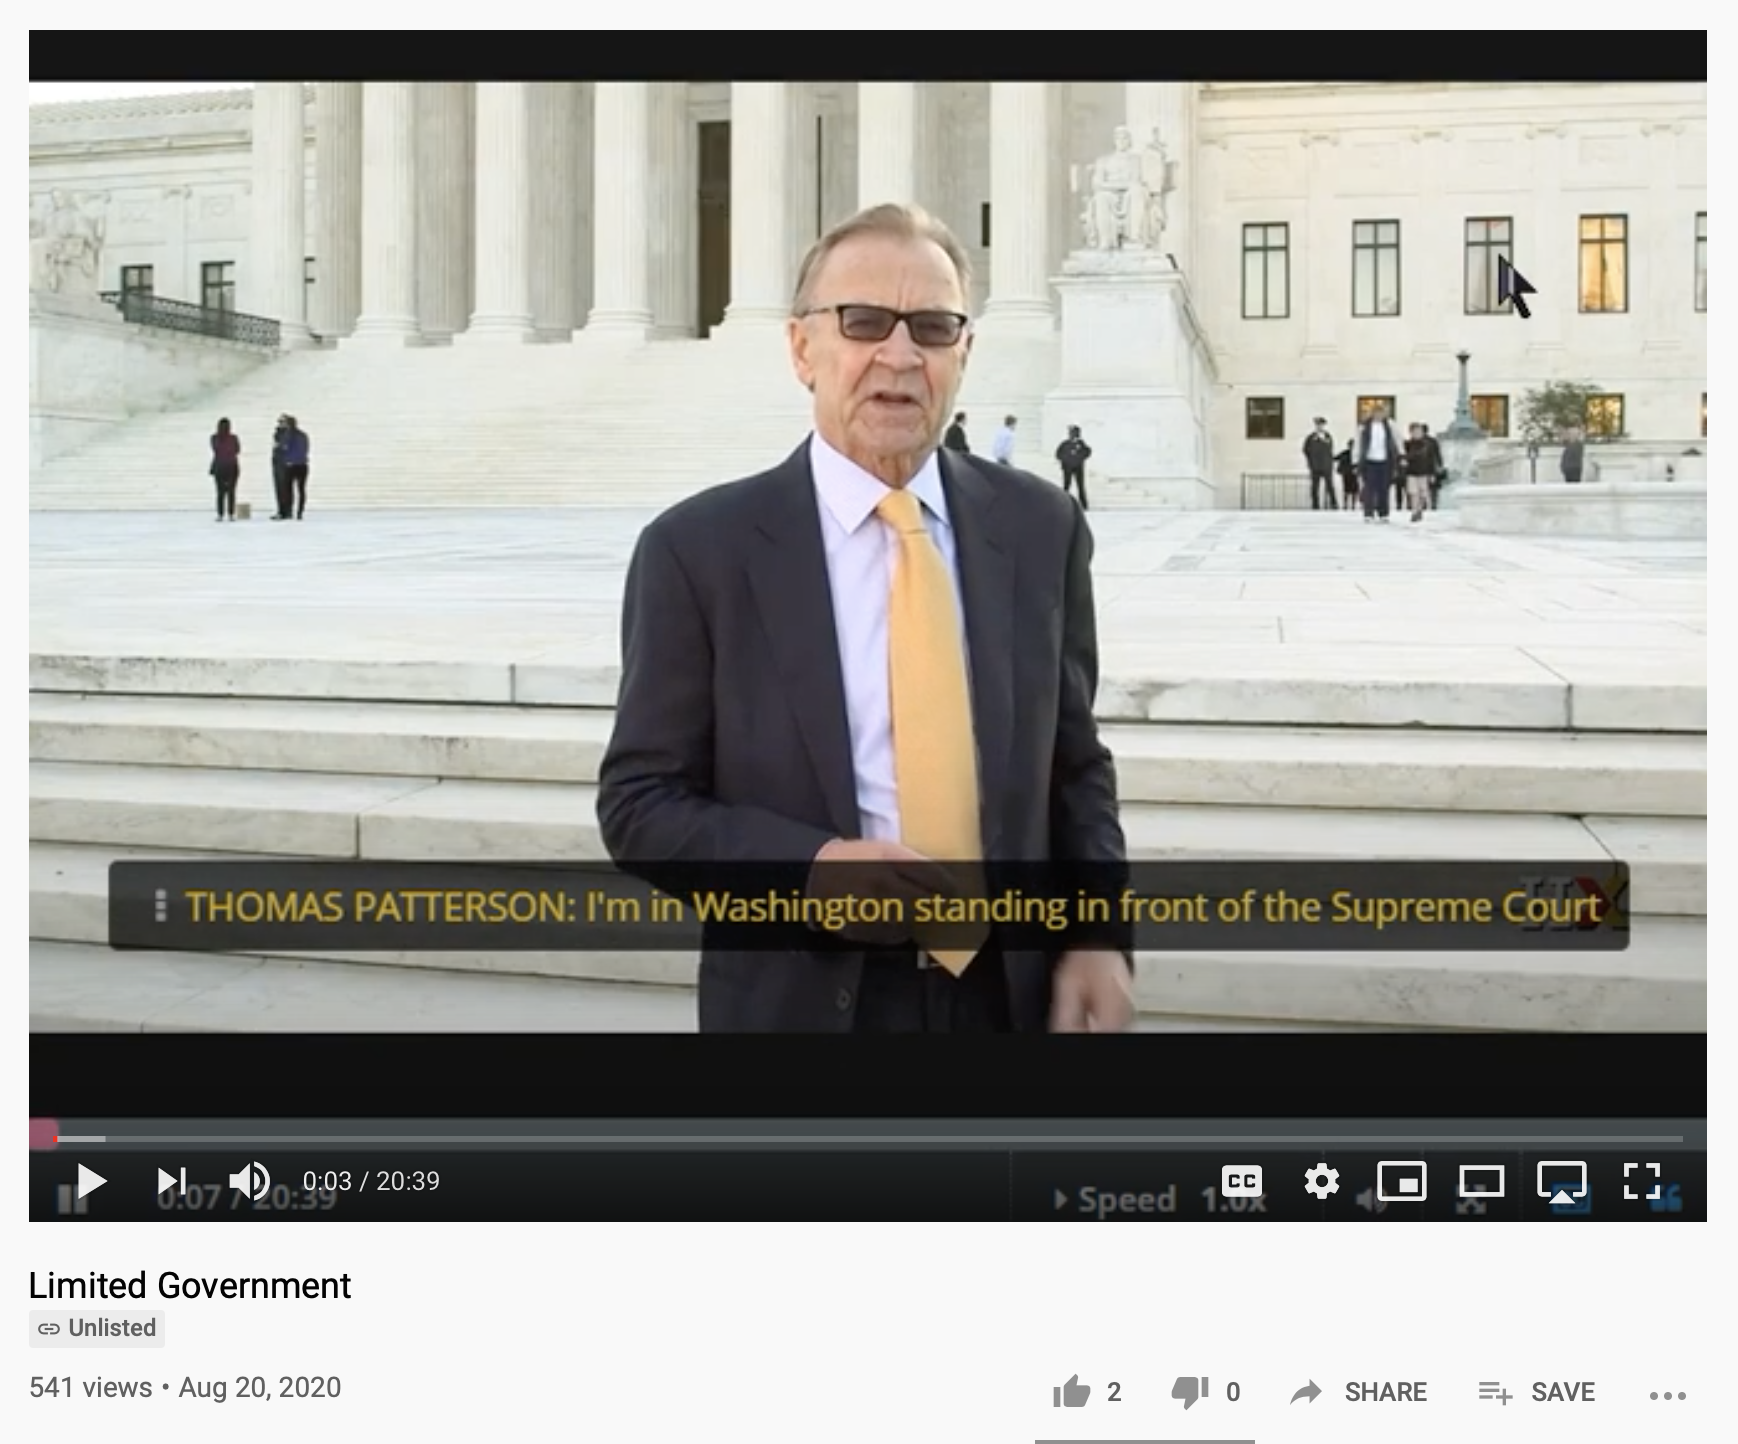 Video lecture from Harvard Professor, William Patterson, on Limited Government available via YouTube and his HarvardXEdX page.